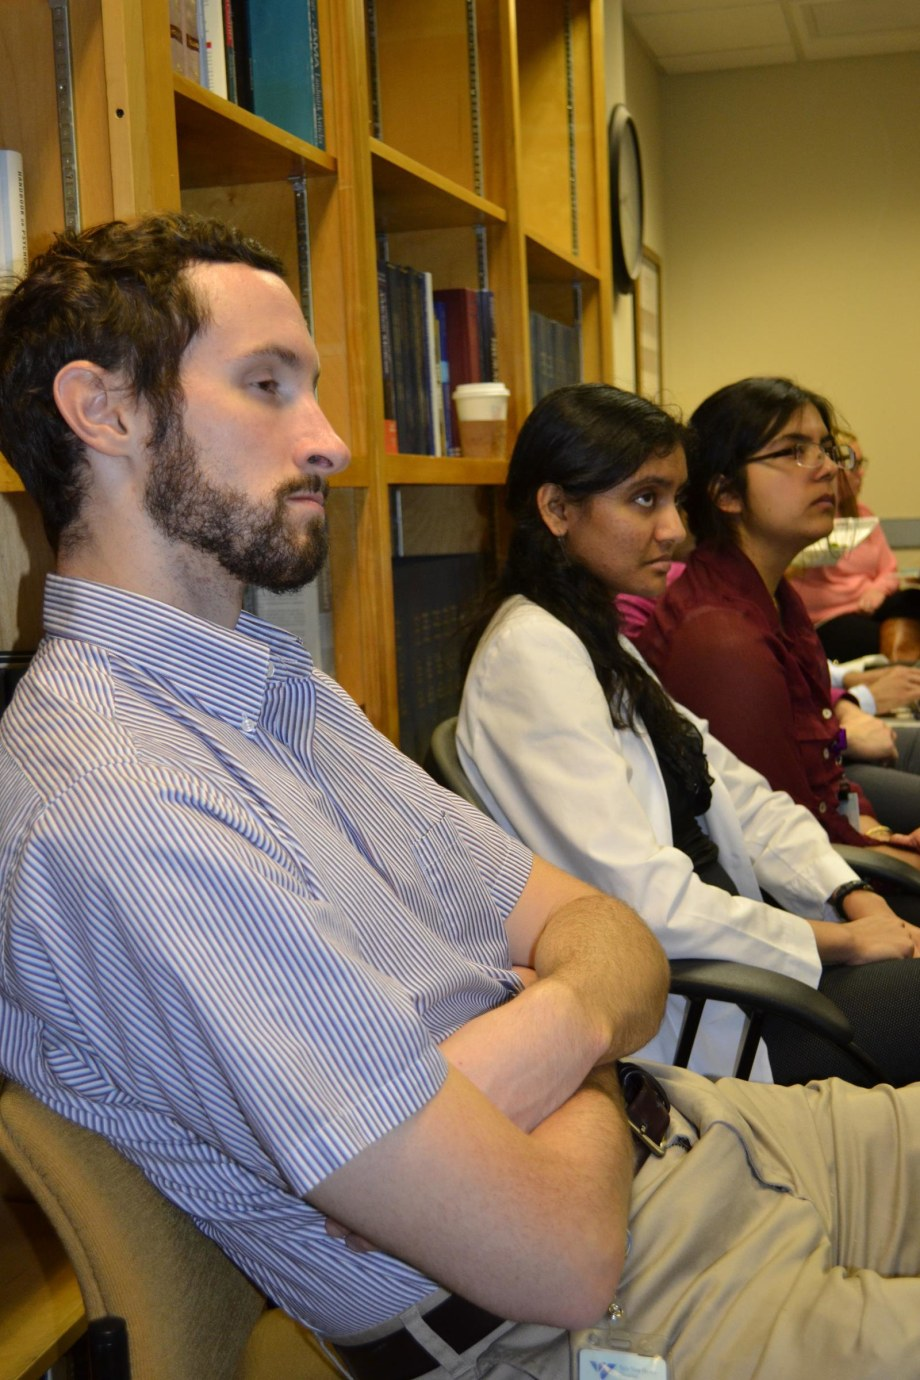 In their 3rd year Yale Medical Students do a 6 week clinical rotation in Psychiatry on one of the various training sites.